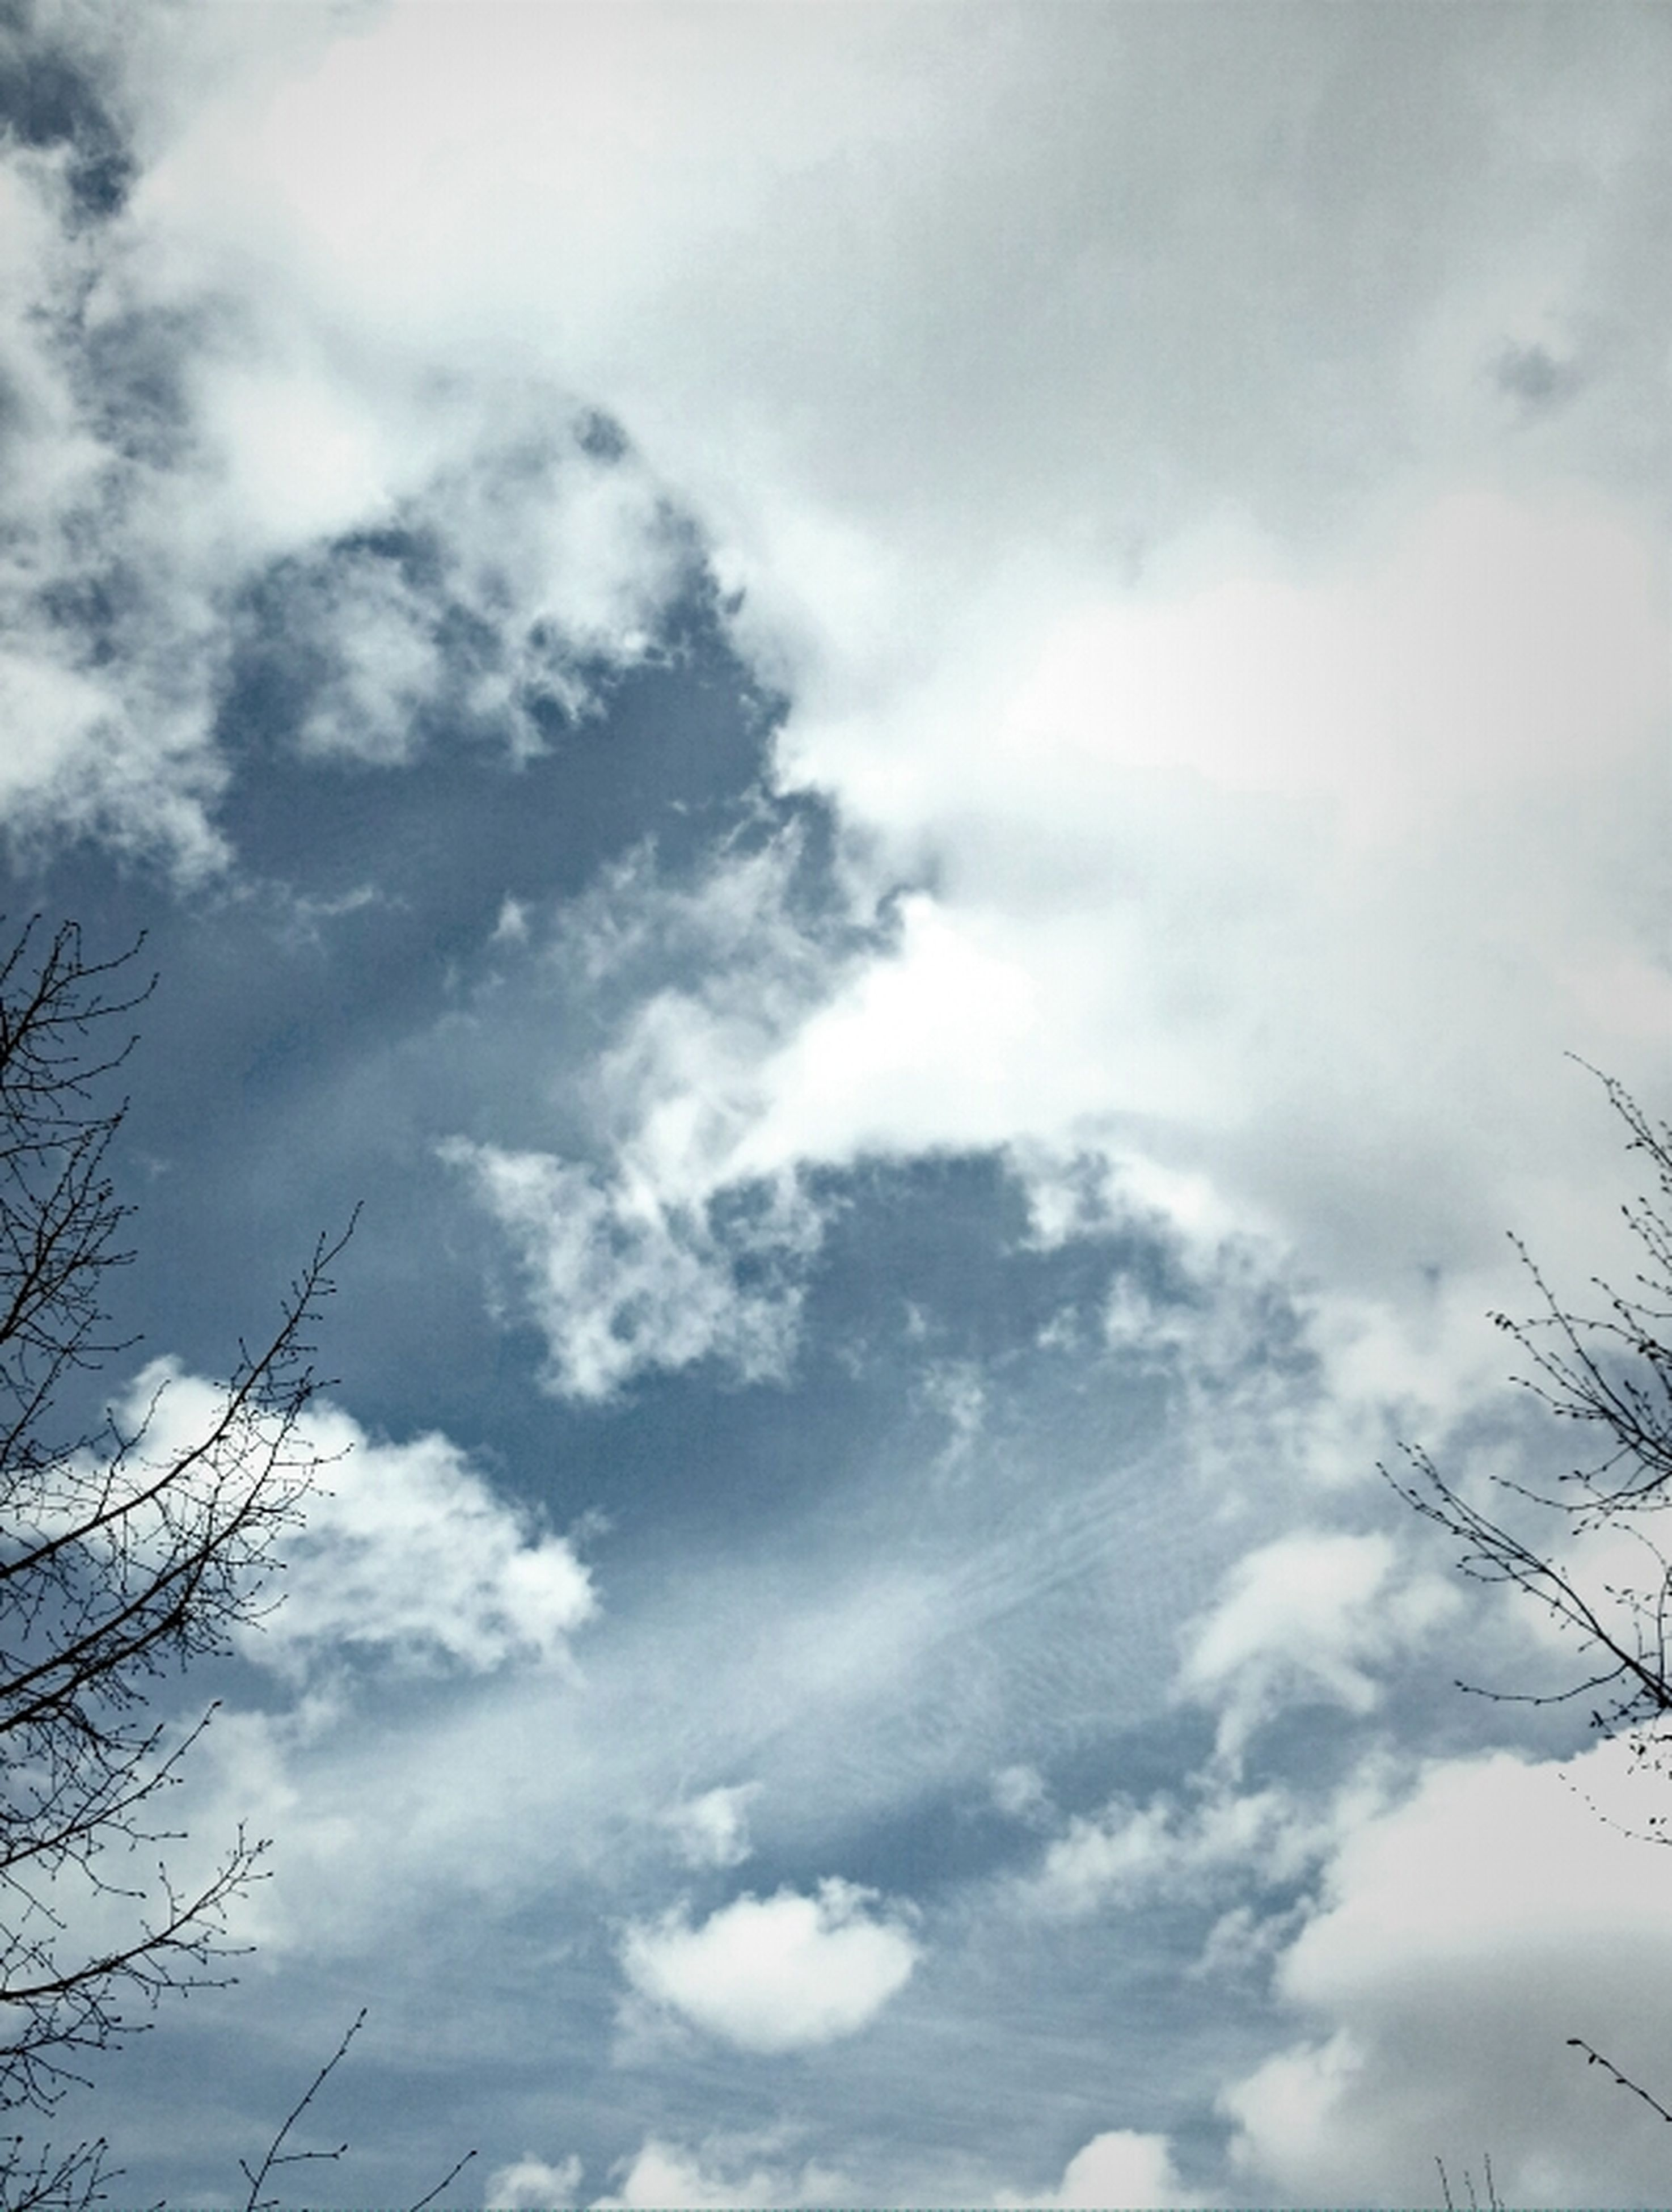 low angle view, sky, cloud - sky, cloudy, tranquility, beauty in nature, nature, scenics, cloud, tranquil scene, tree, cloudscape, outdoors, weather, day, high section, no people, branch, overcast, backgrounds